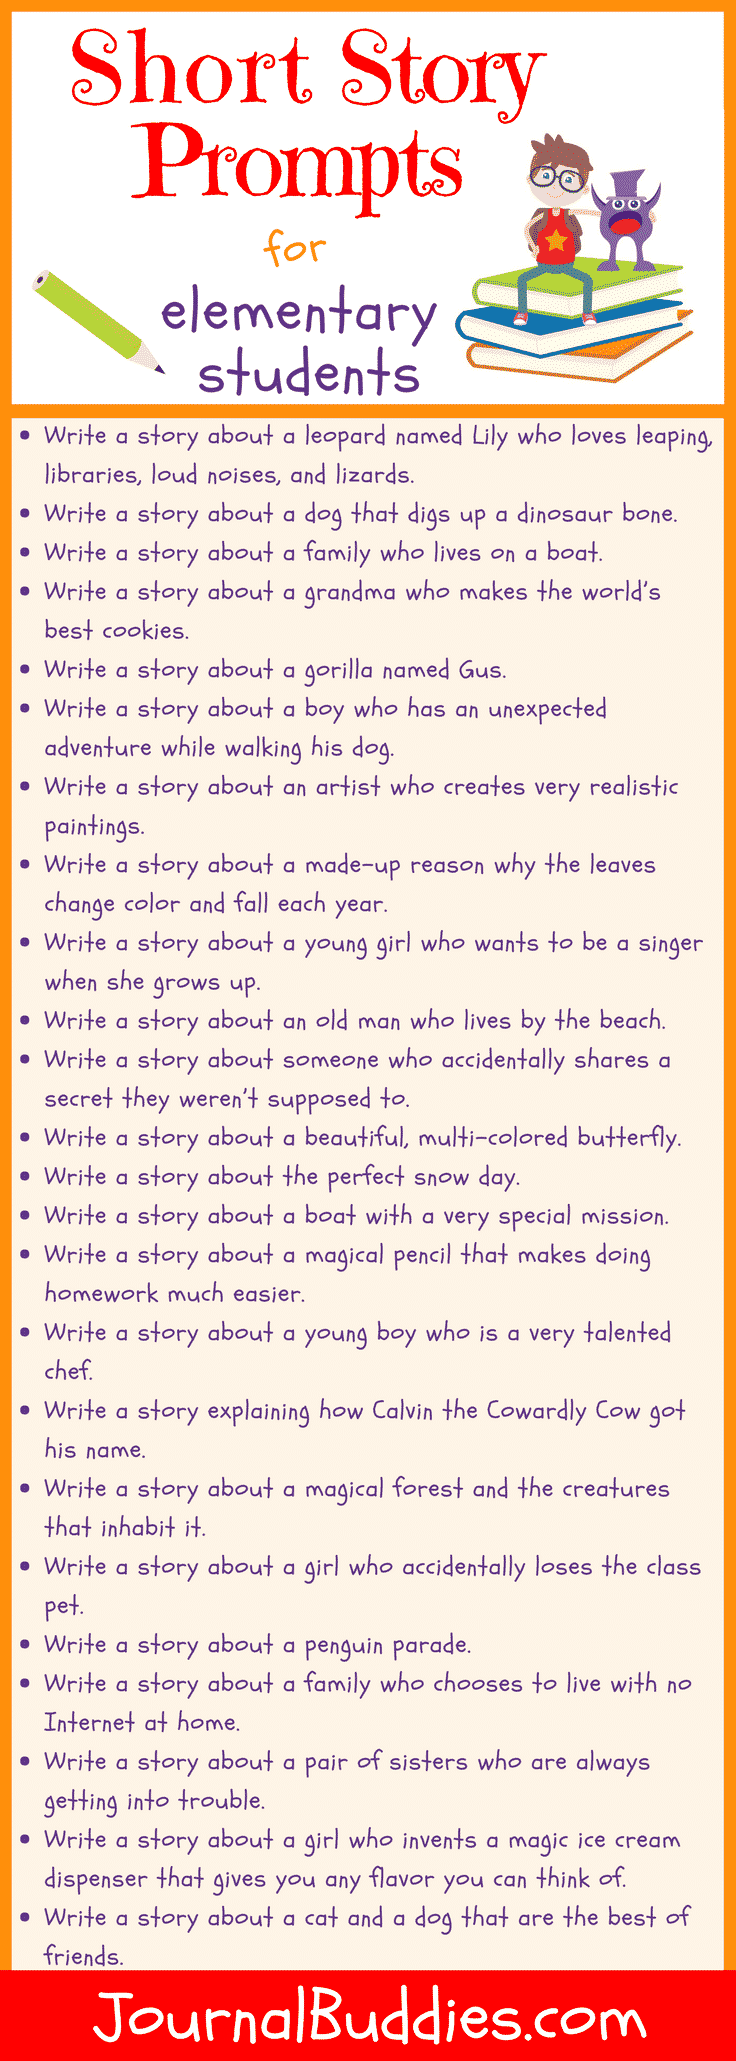 Short Story Prompts Short story prompts, Creative